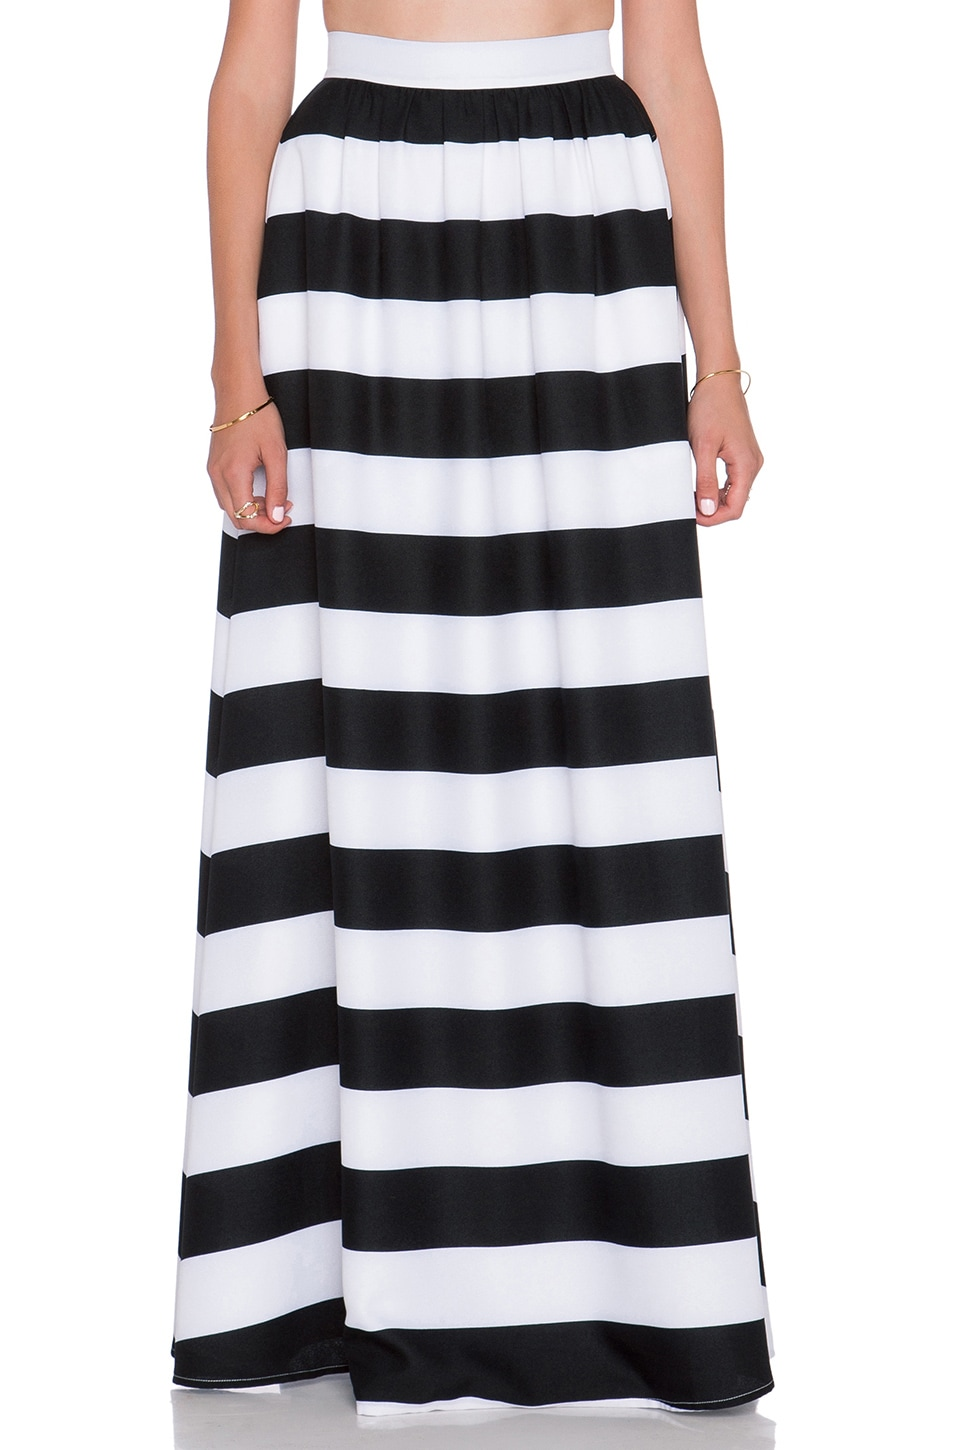 BLAQUE LABEL Striped Maxi Skirt in Black & White | REVOLVE